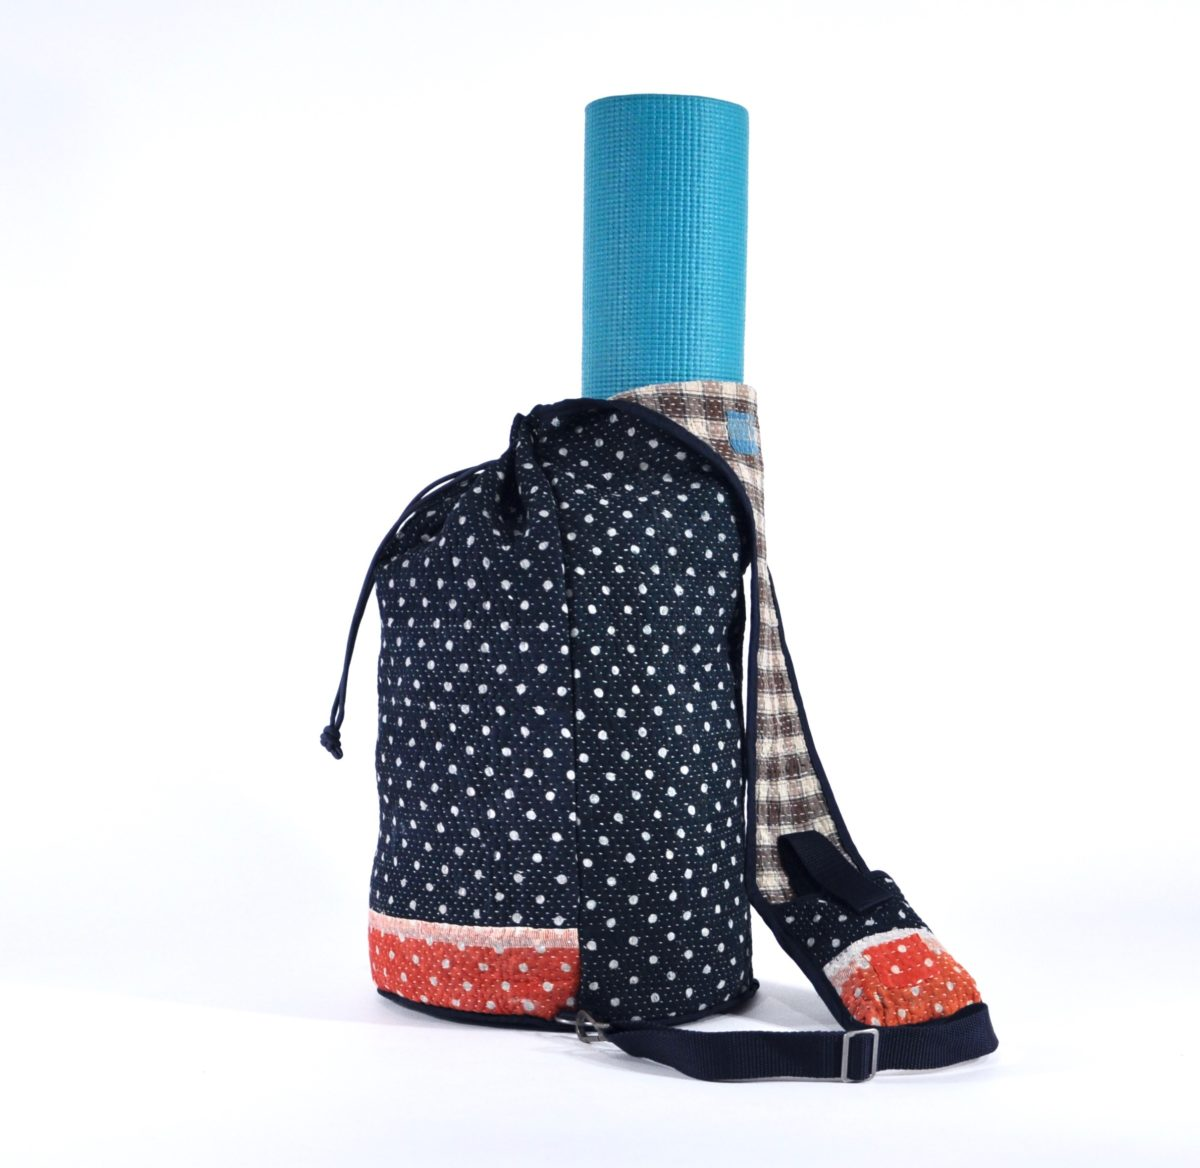 YESNESS Navy w: White Polka Dots & Red Band 3